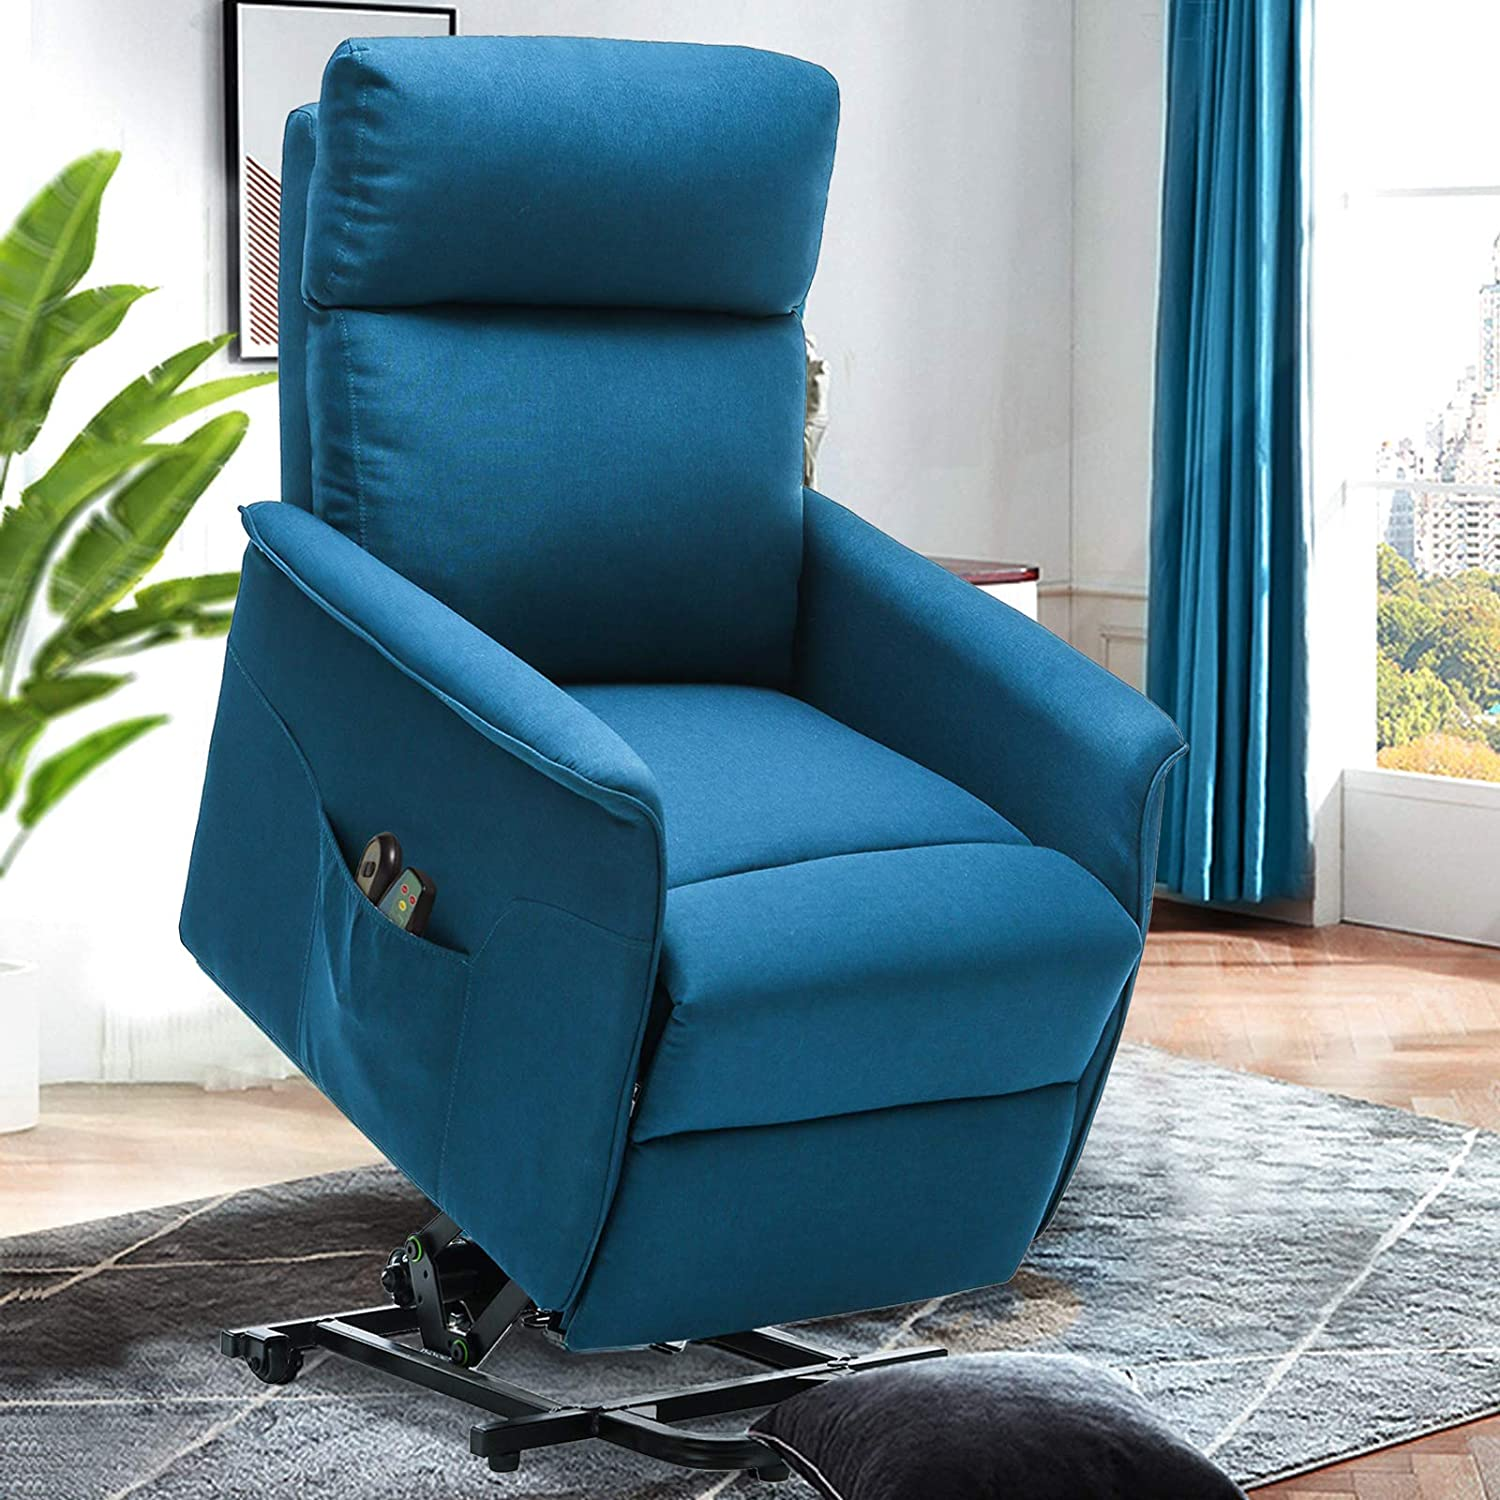 ERGOREAL Power Lift Recliner for Elderly Electric Lift Chairs with Heat and  Massage Fabric Lift Chair with USB Port and Side Pocket (Blue Green):  Amazon.in: Home & Kitchen